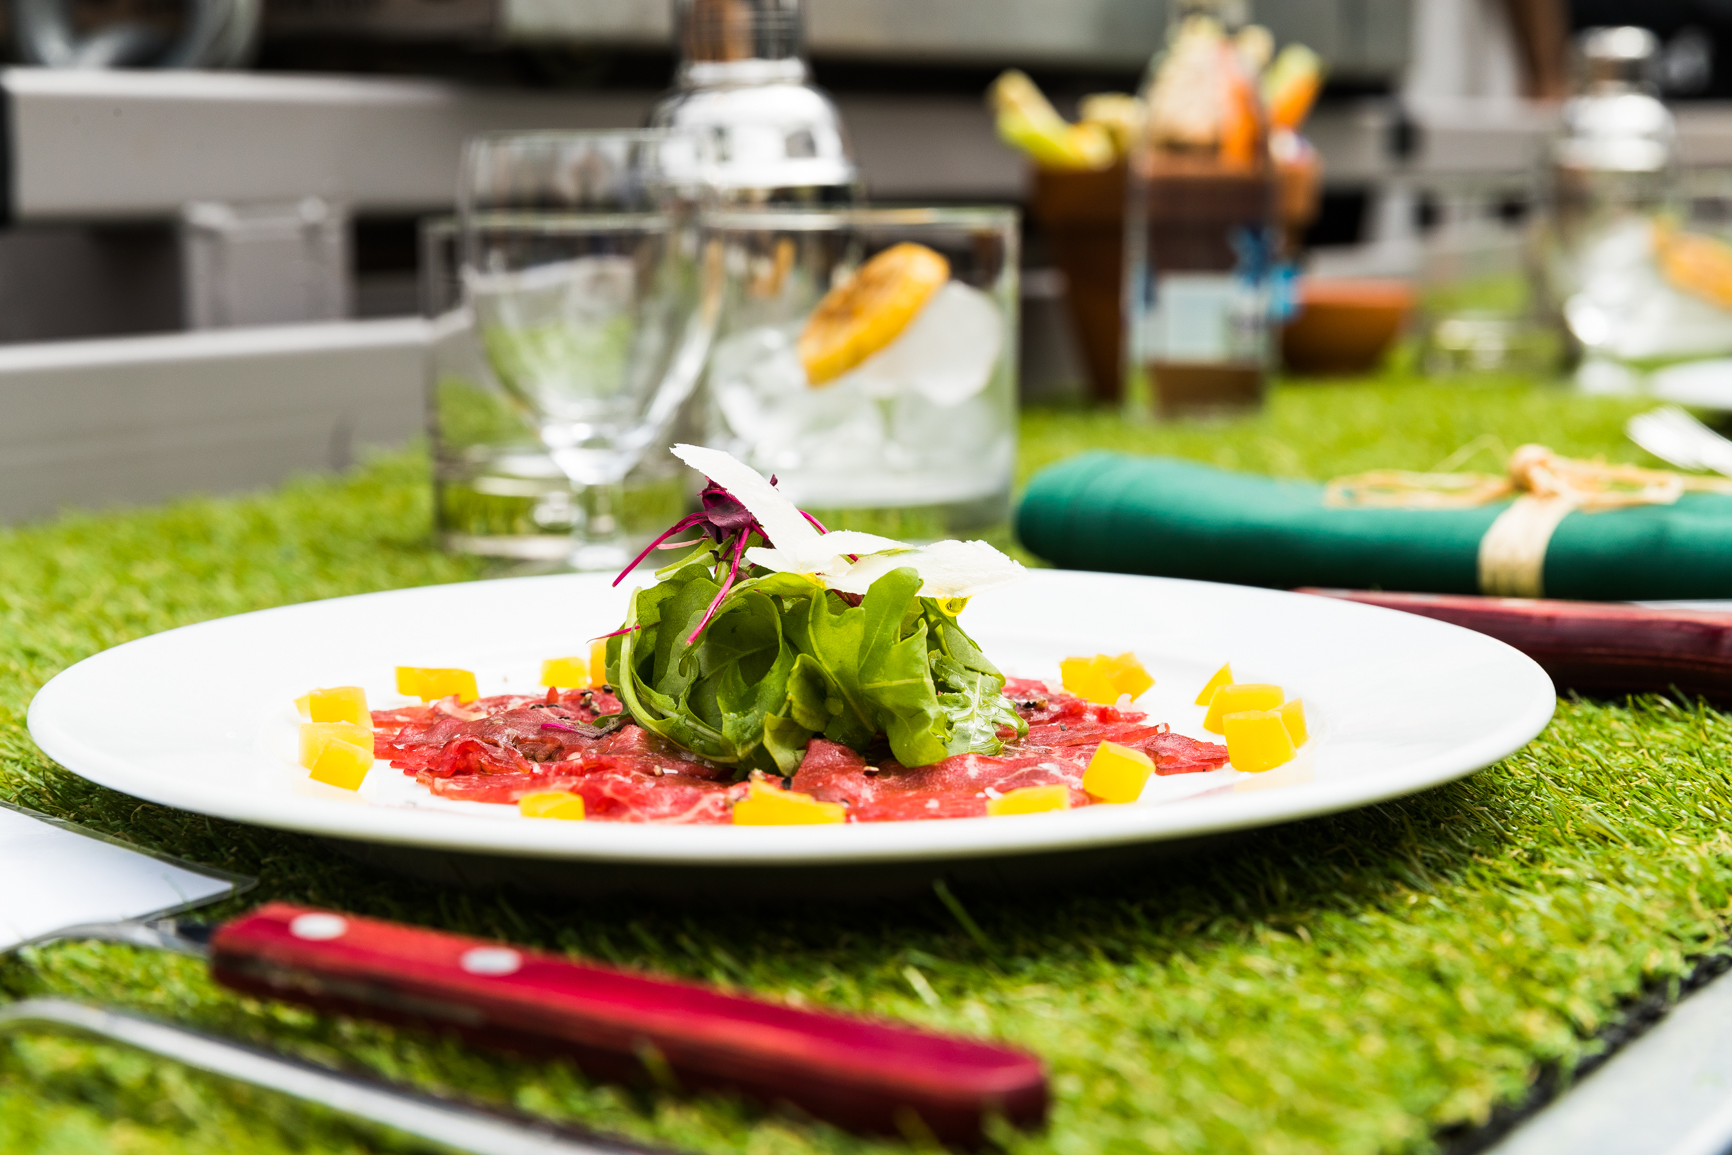 Our starter of Carpaccio of beef welcomed guests onto the platform